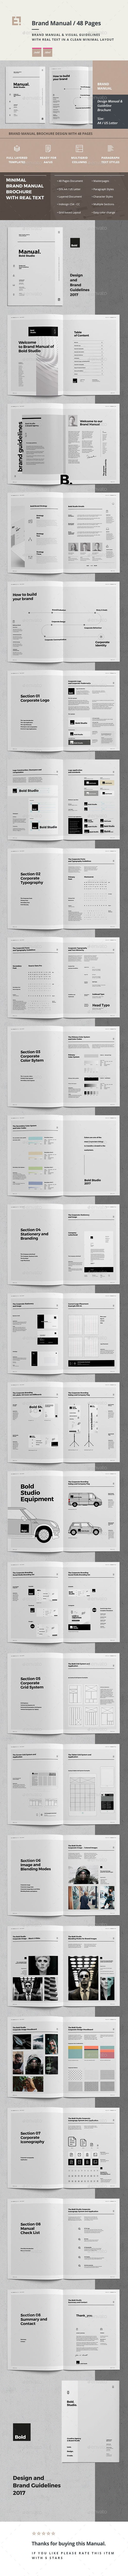 Brand Manual — InDesign INDD #print #minimal • Available here → https://graphicriver.net/item/brand-manual/20668783?ref=pxcr